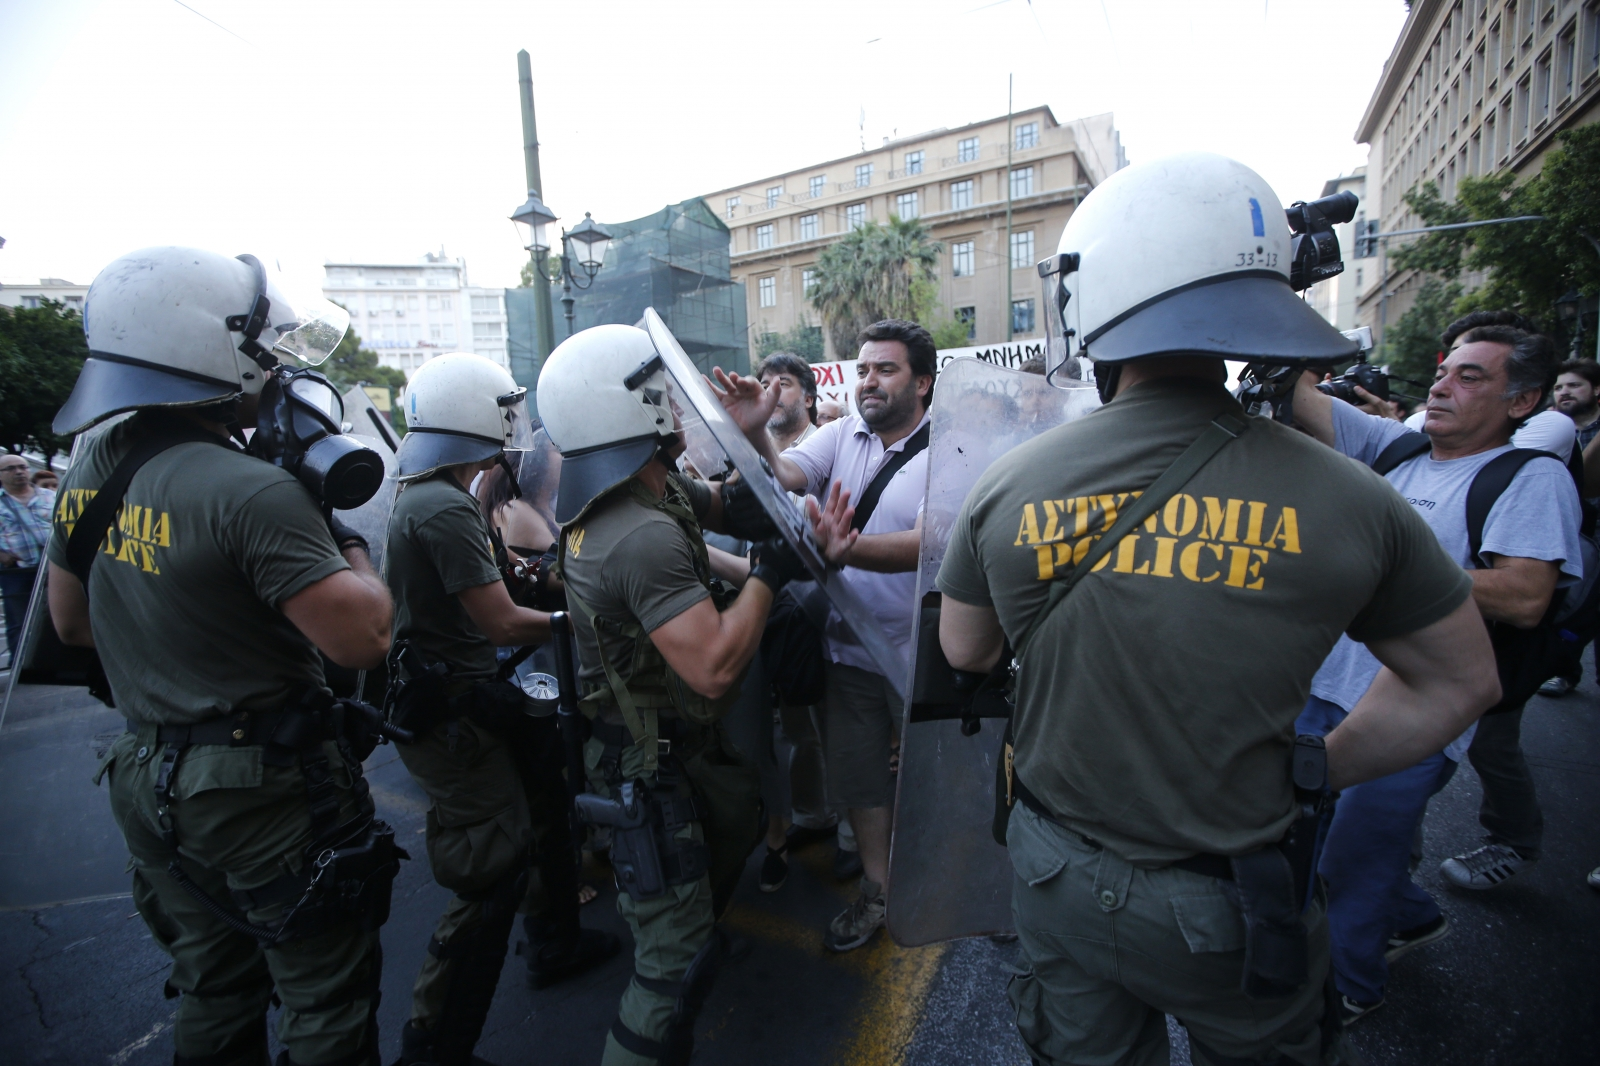 Anti-austerity protestors in Athens